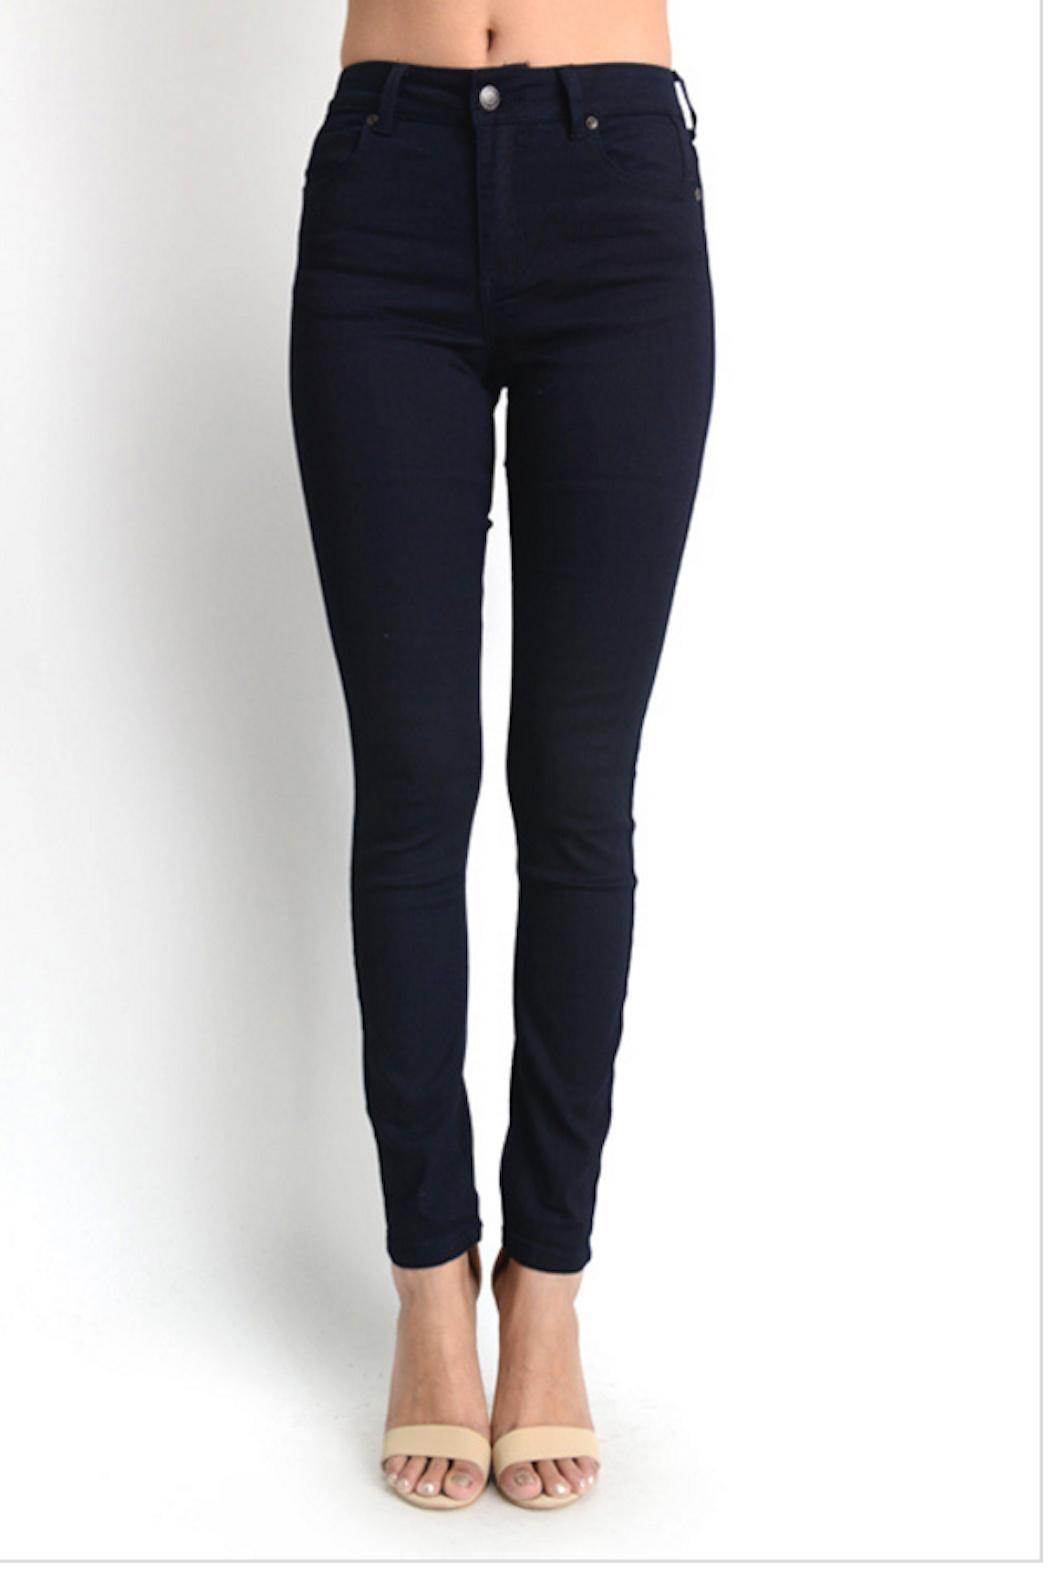 Gina Louise Navy Skinny Jeans from Southampton — Shoptiques